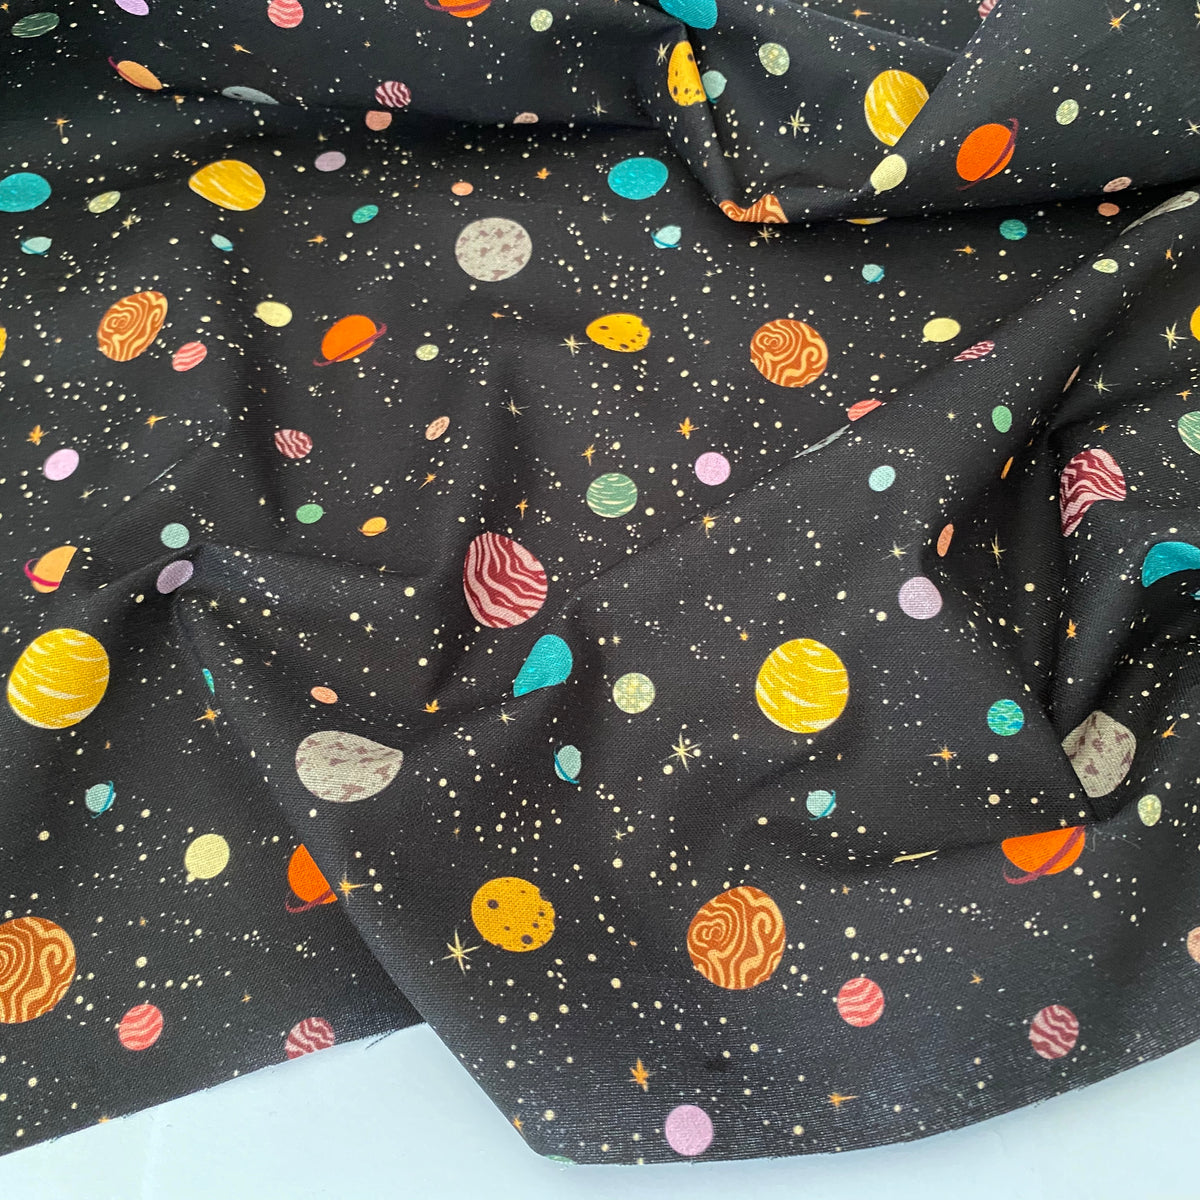 Outer Space planets black 100% cotton fabric, sold per 1/2 metre, 112cm wide